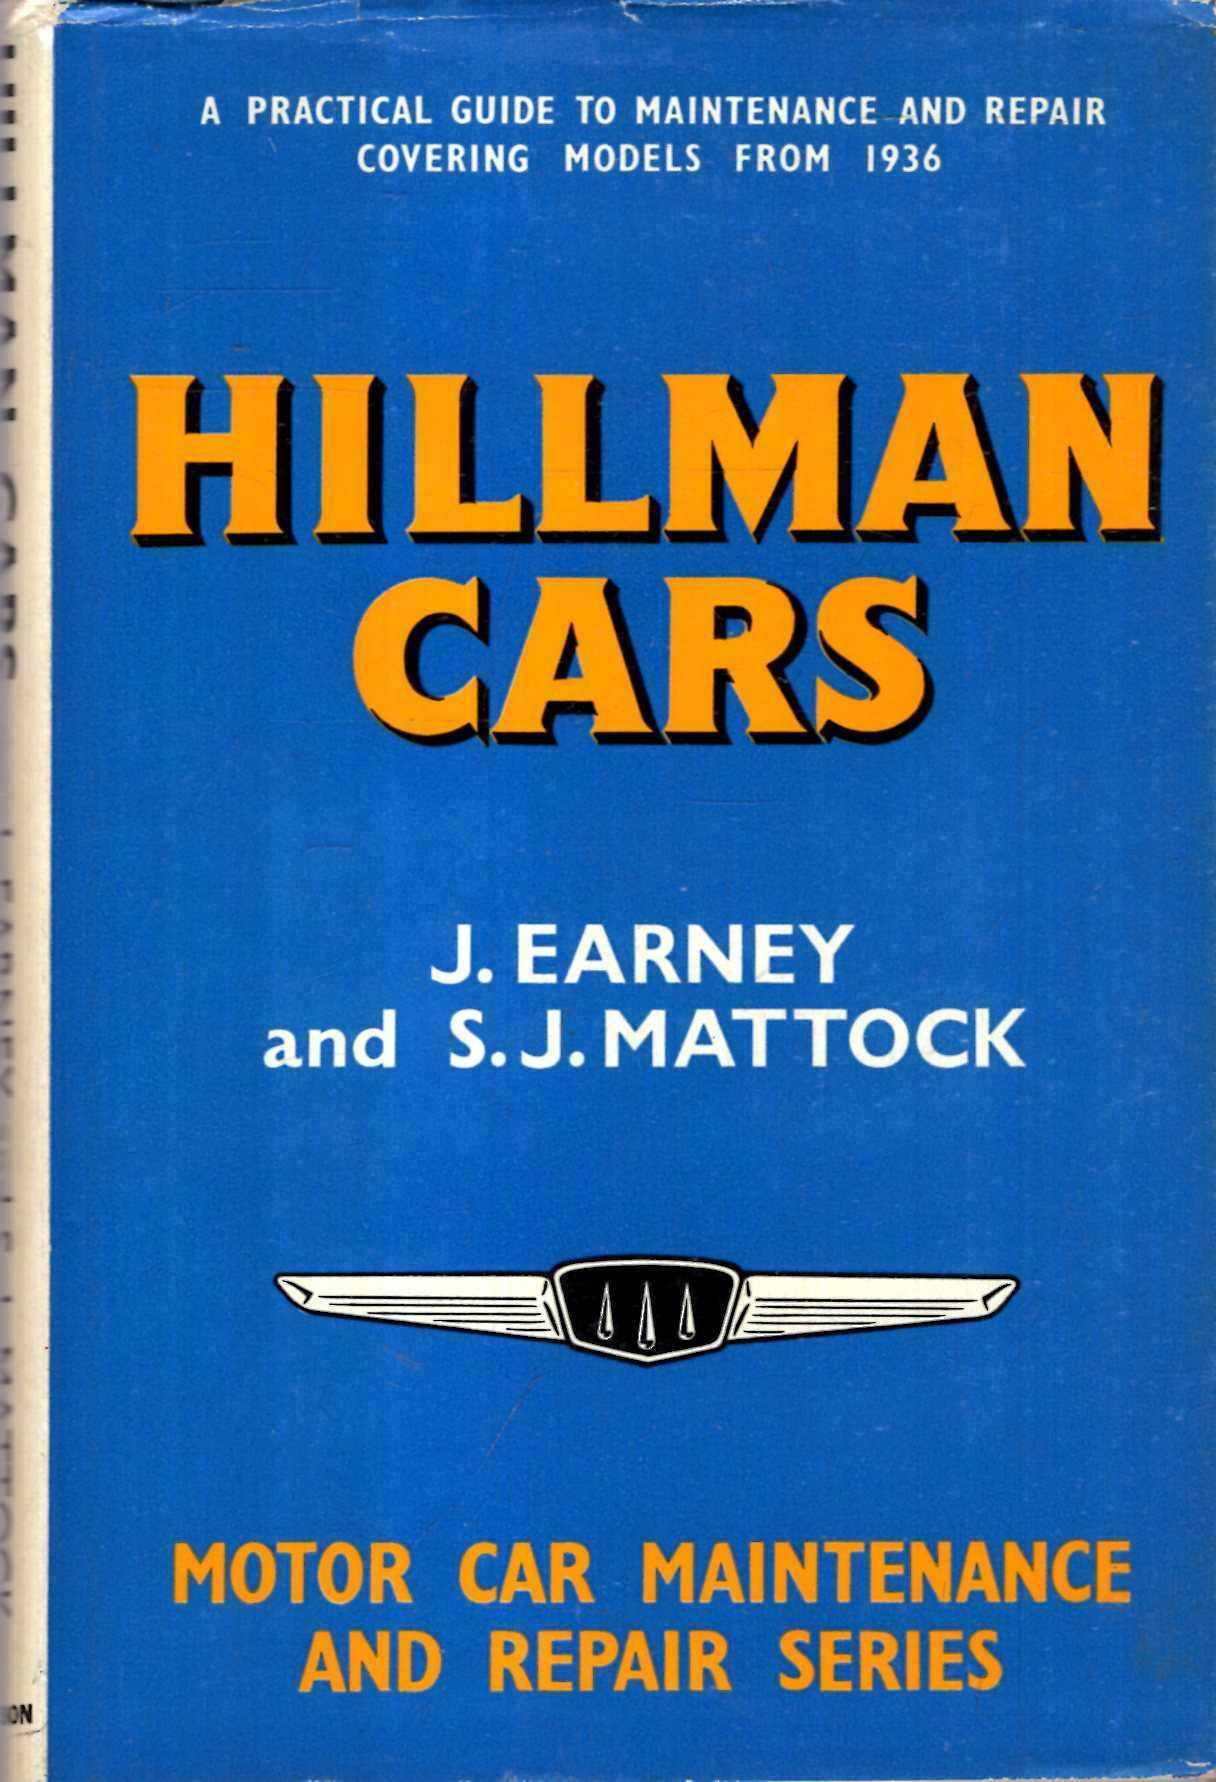 Image for Hillman Cars : a practical guide to maintenance and repair covering models from 1936